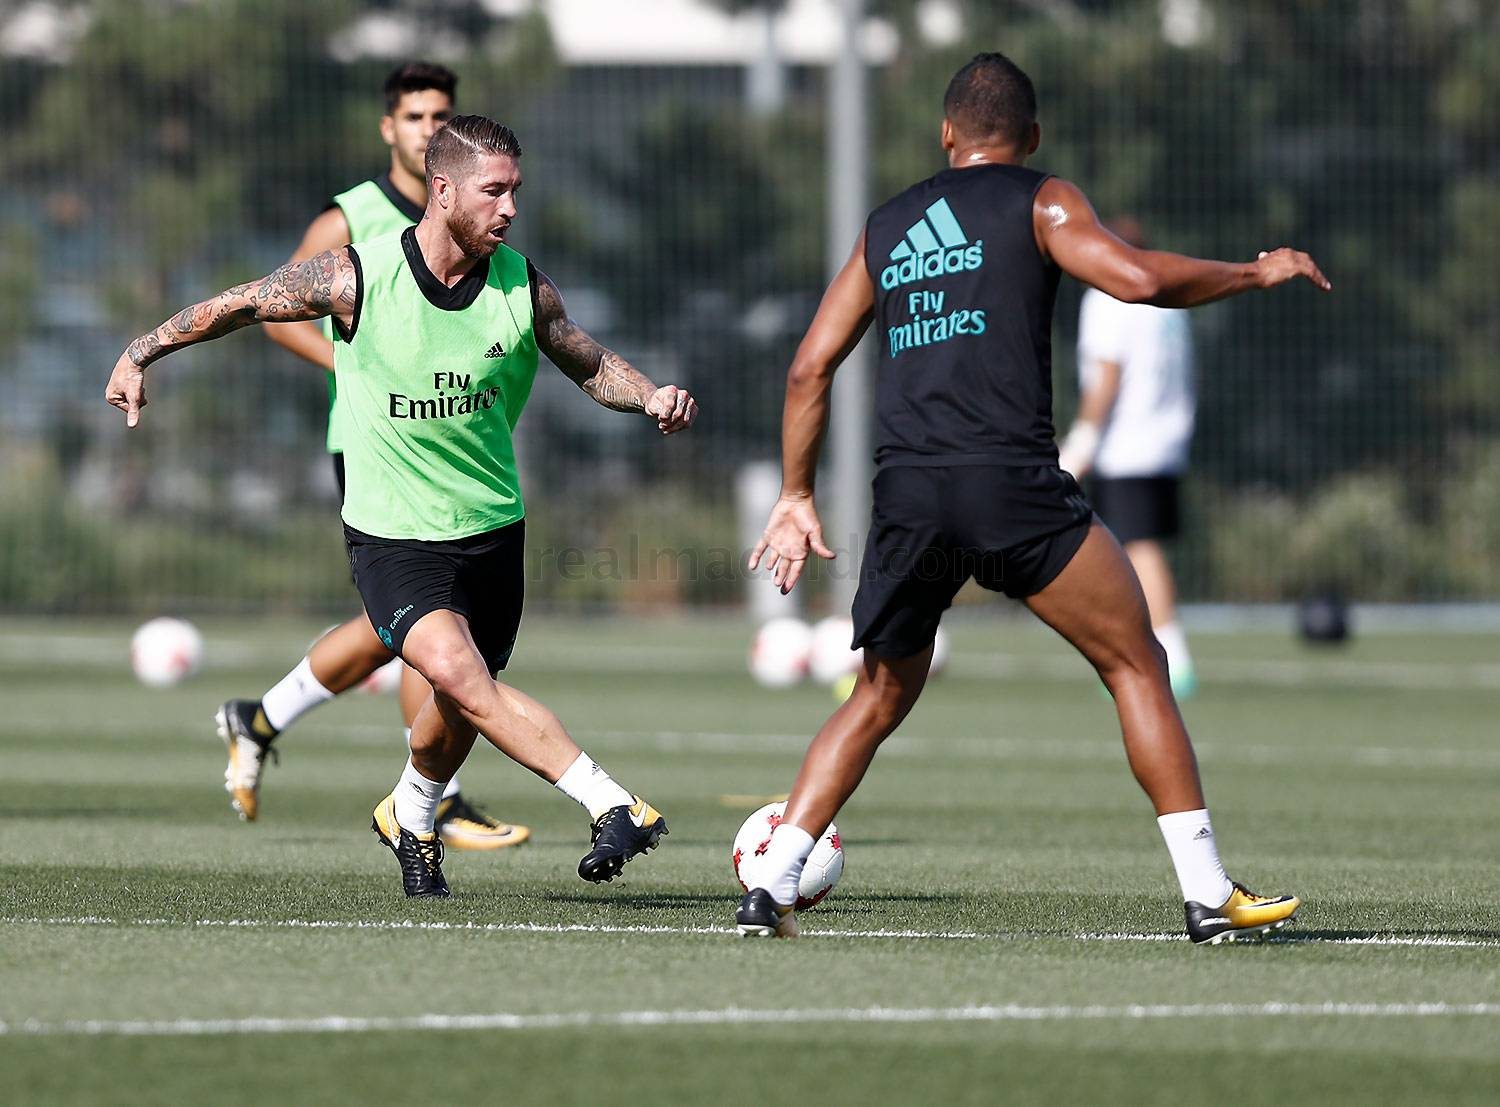 Real Madrid - Entrenamiento del Real Madrid - 22-08-2017